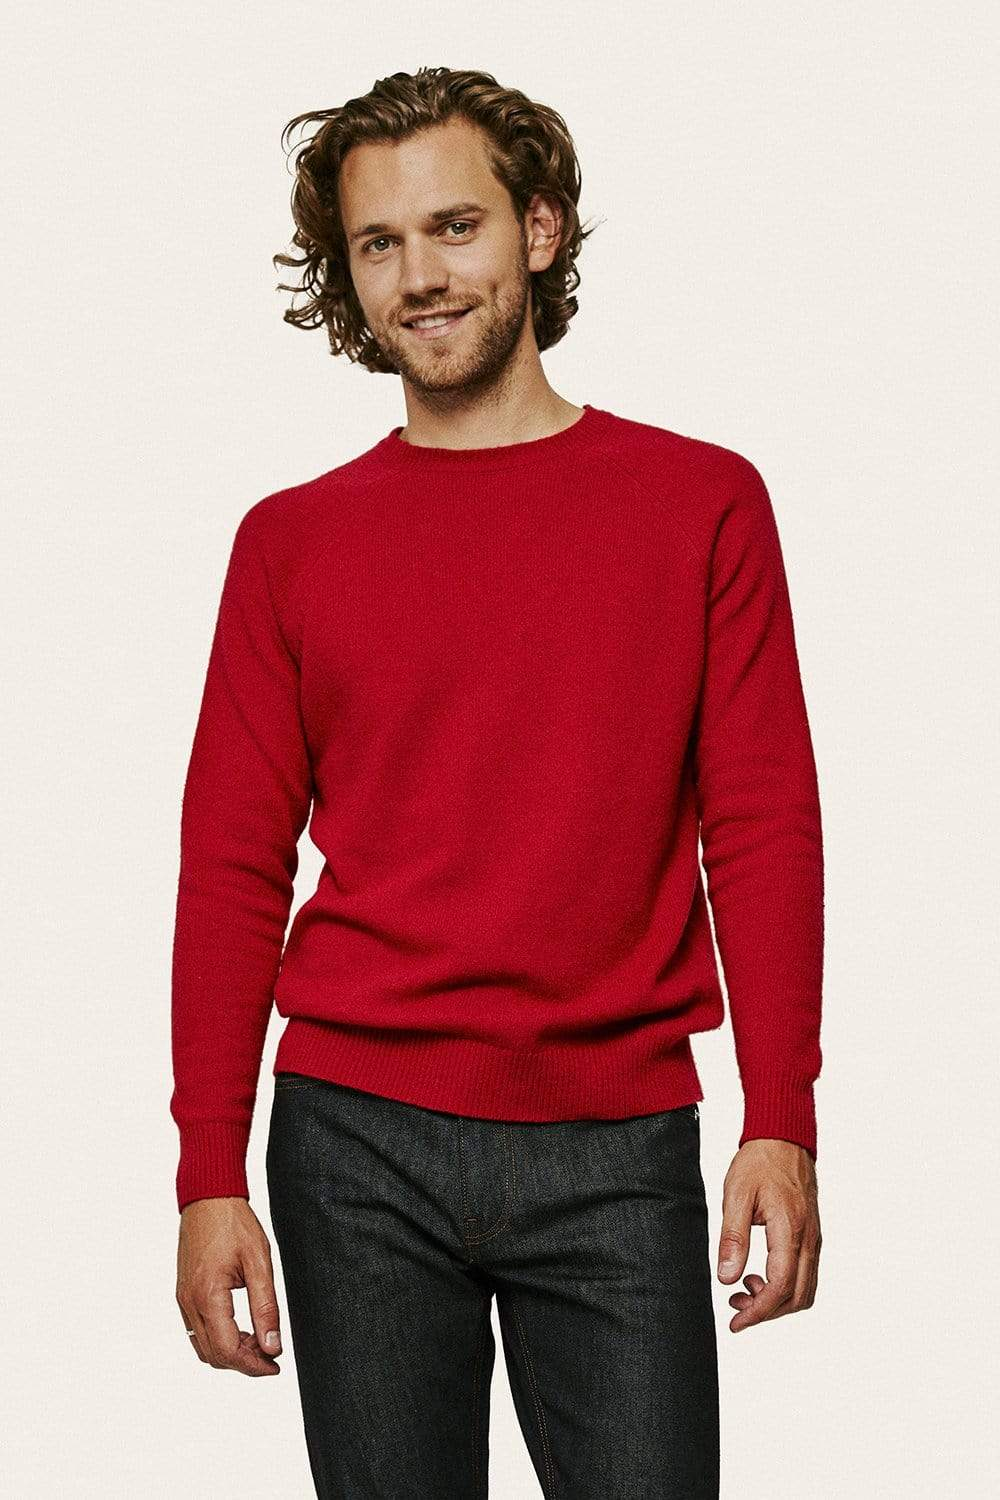 Topaze Sweater - Rouge